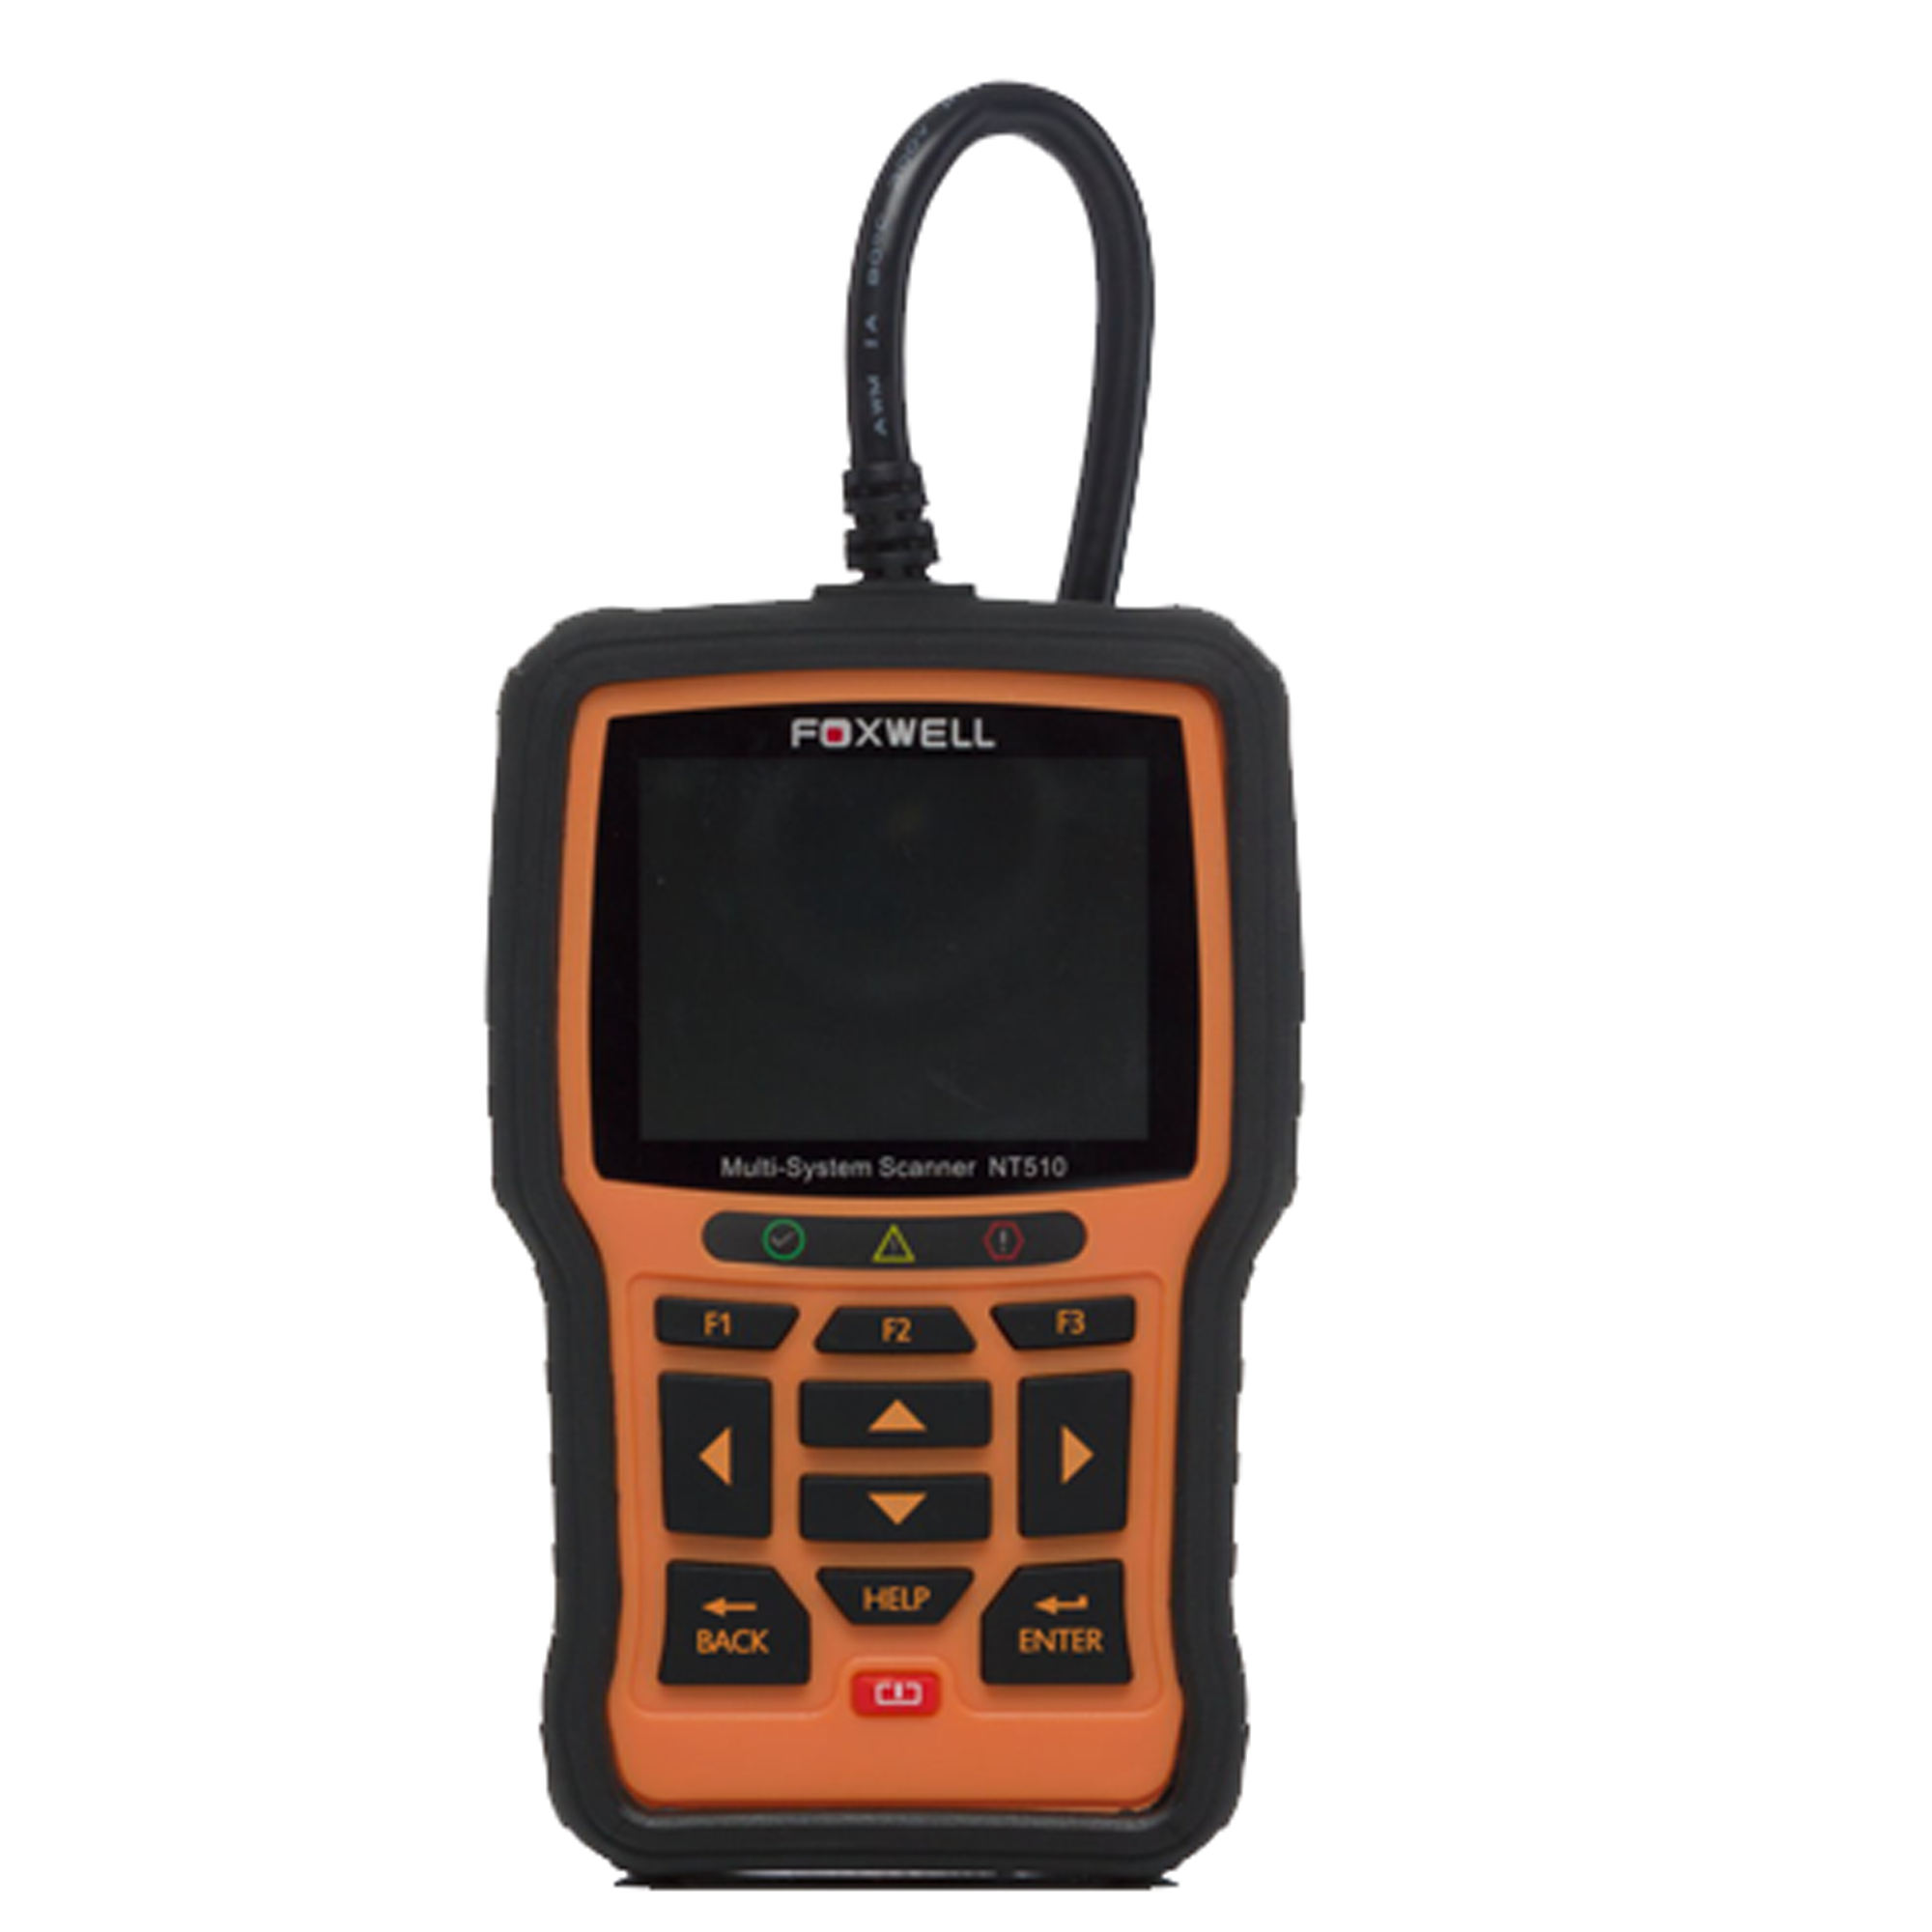 Details about NT510 for JEEP Grand Cherokee DIAGNOSTIC SCANNER OBD2 SCAN  TOOL CODE READER